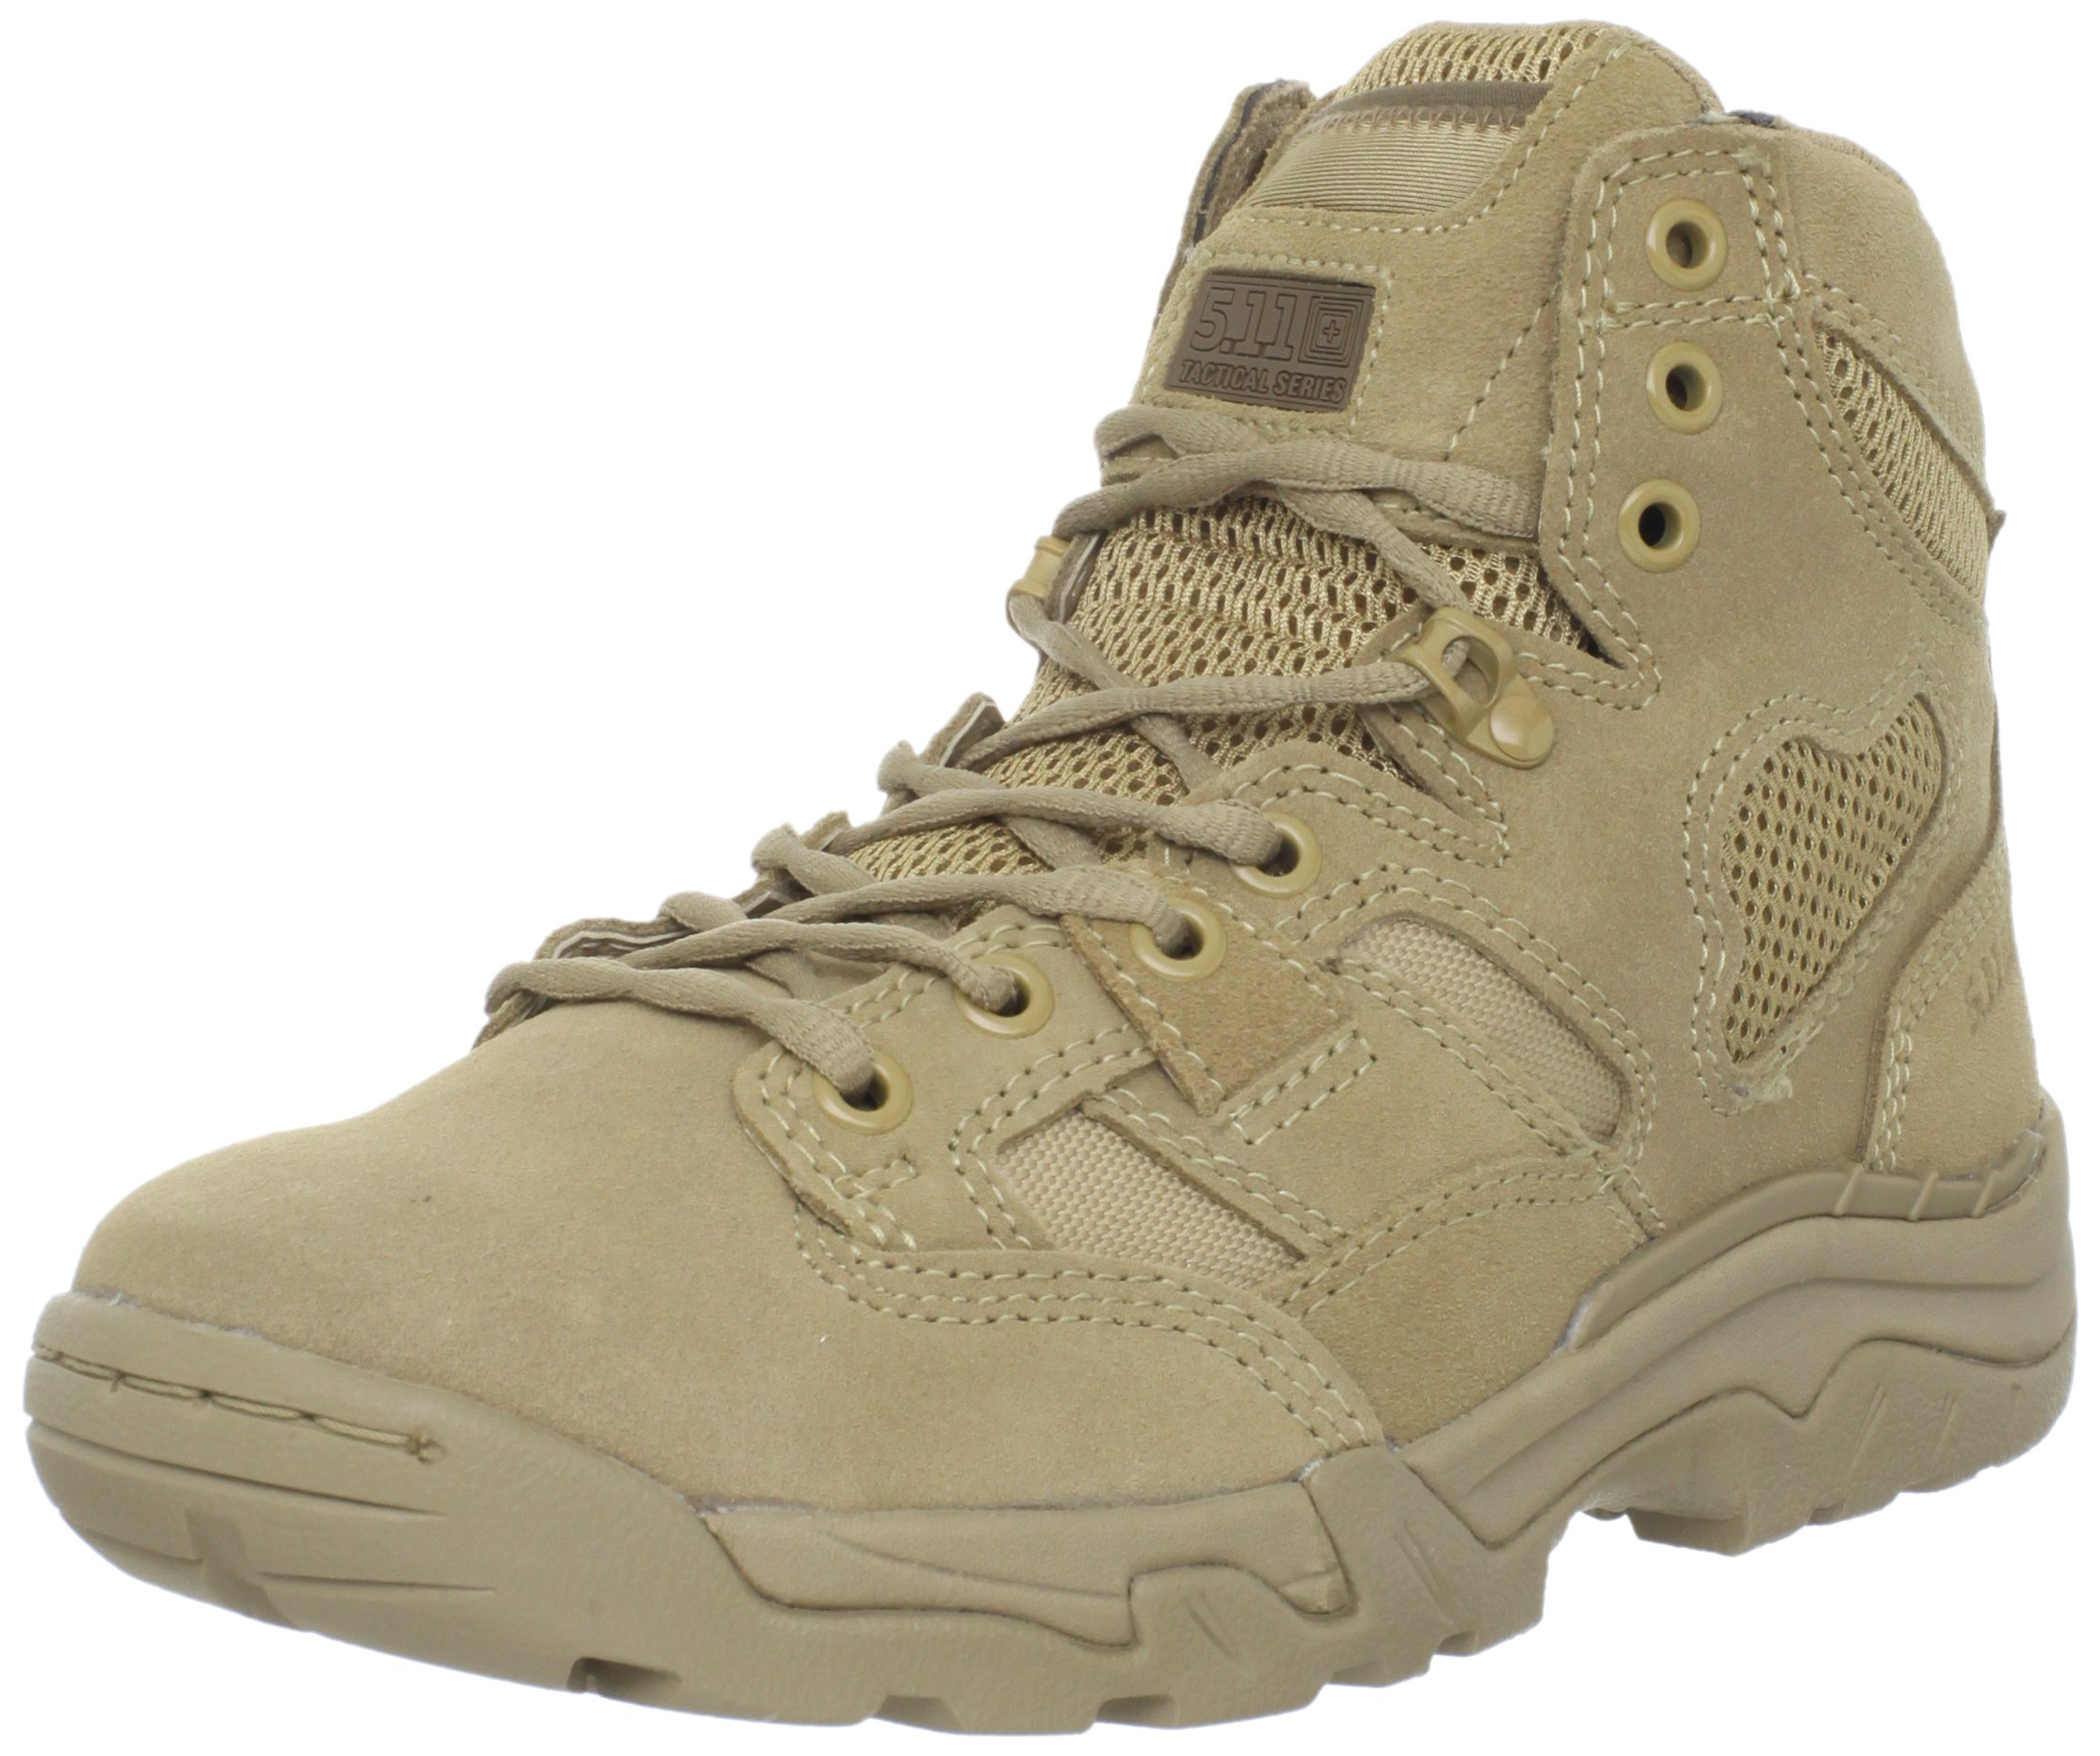 5.11 Men's Taclite 6In Boot-U, Coyote, 9.5 D(M) US by 5.11